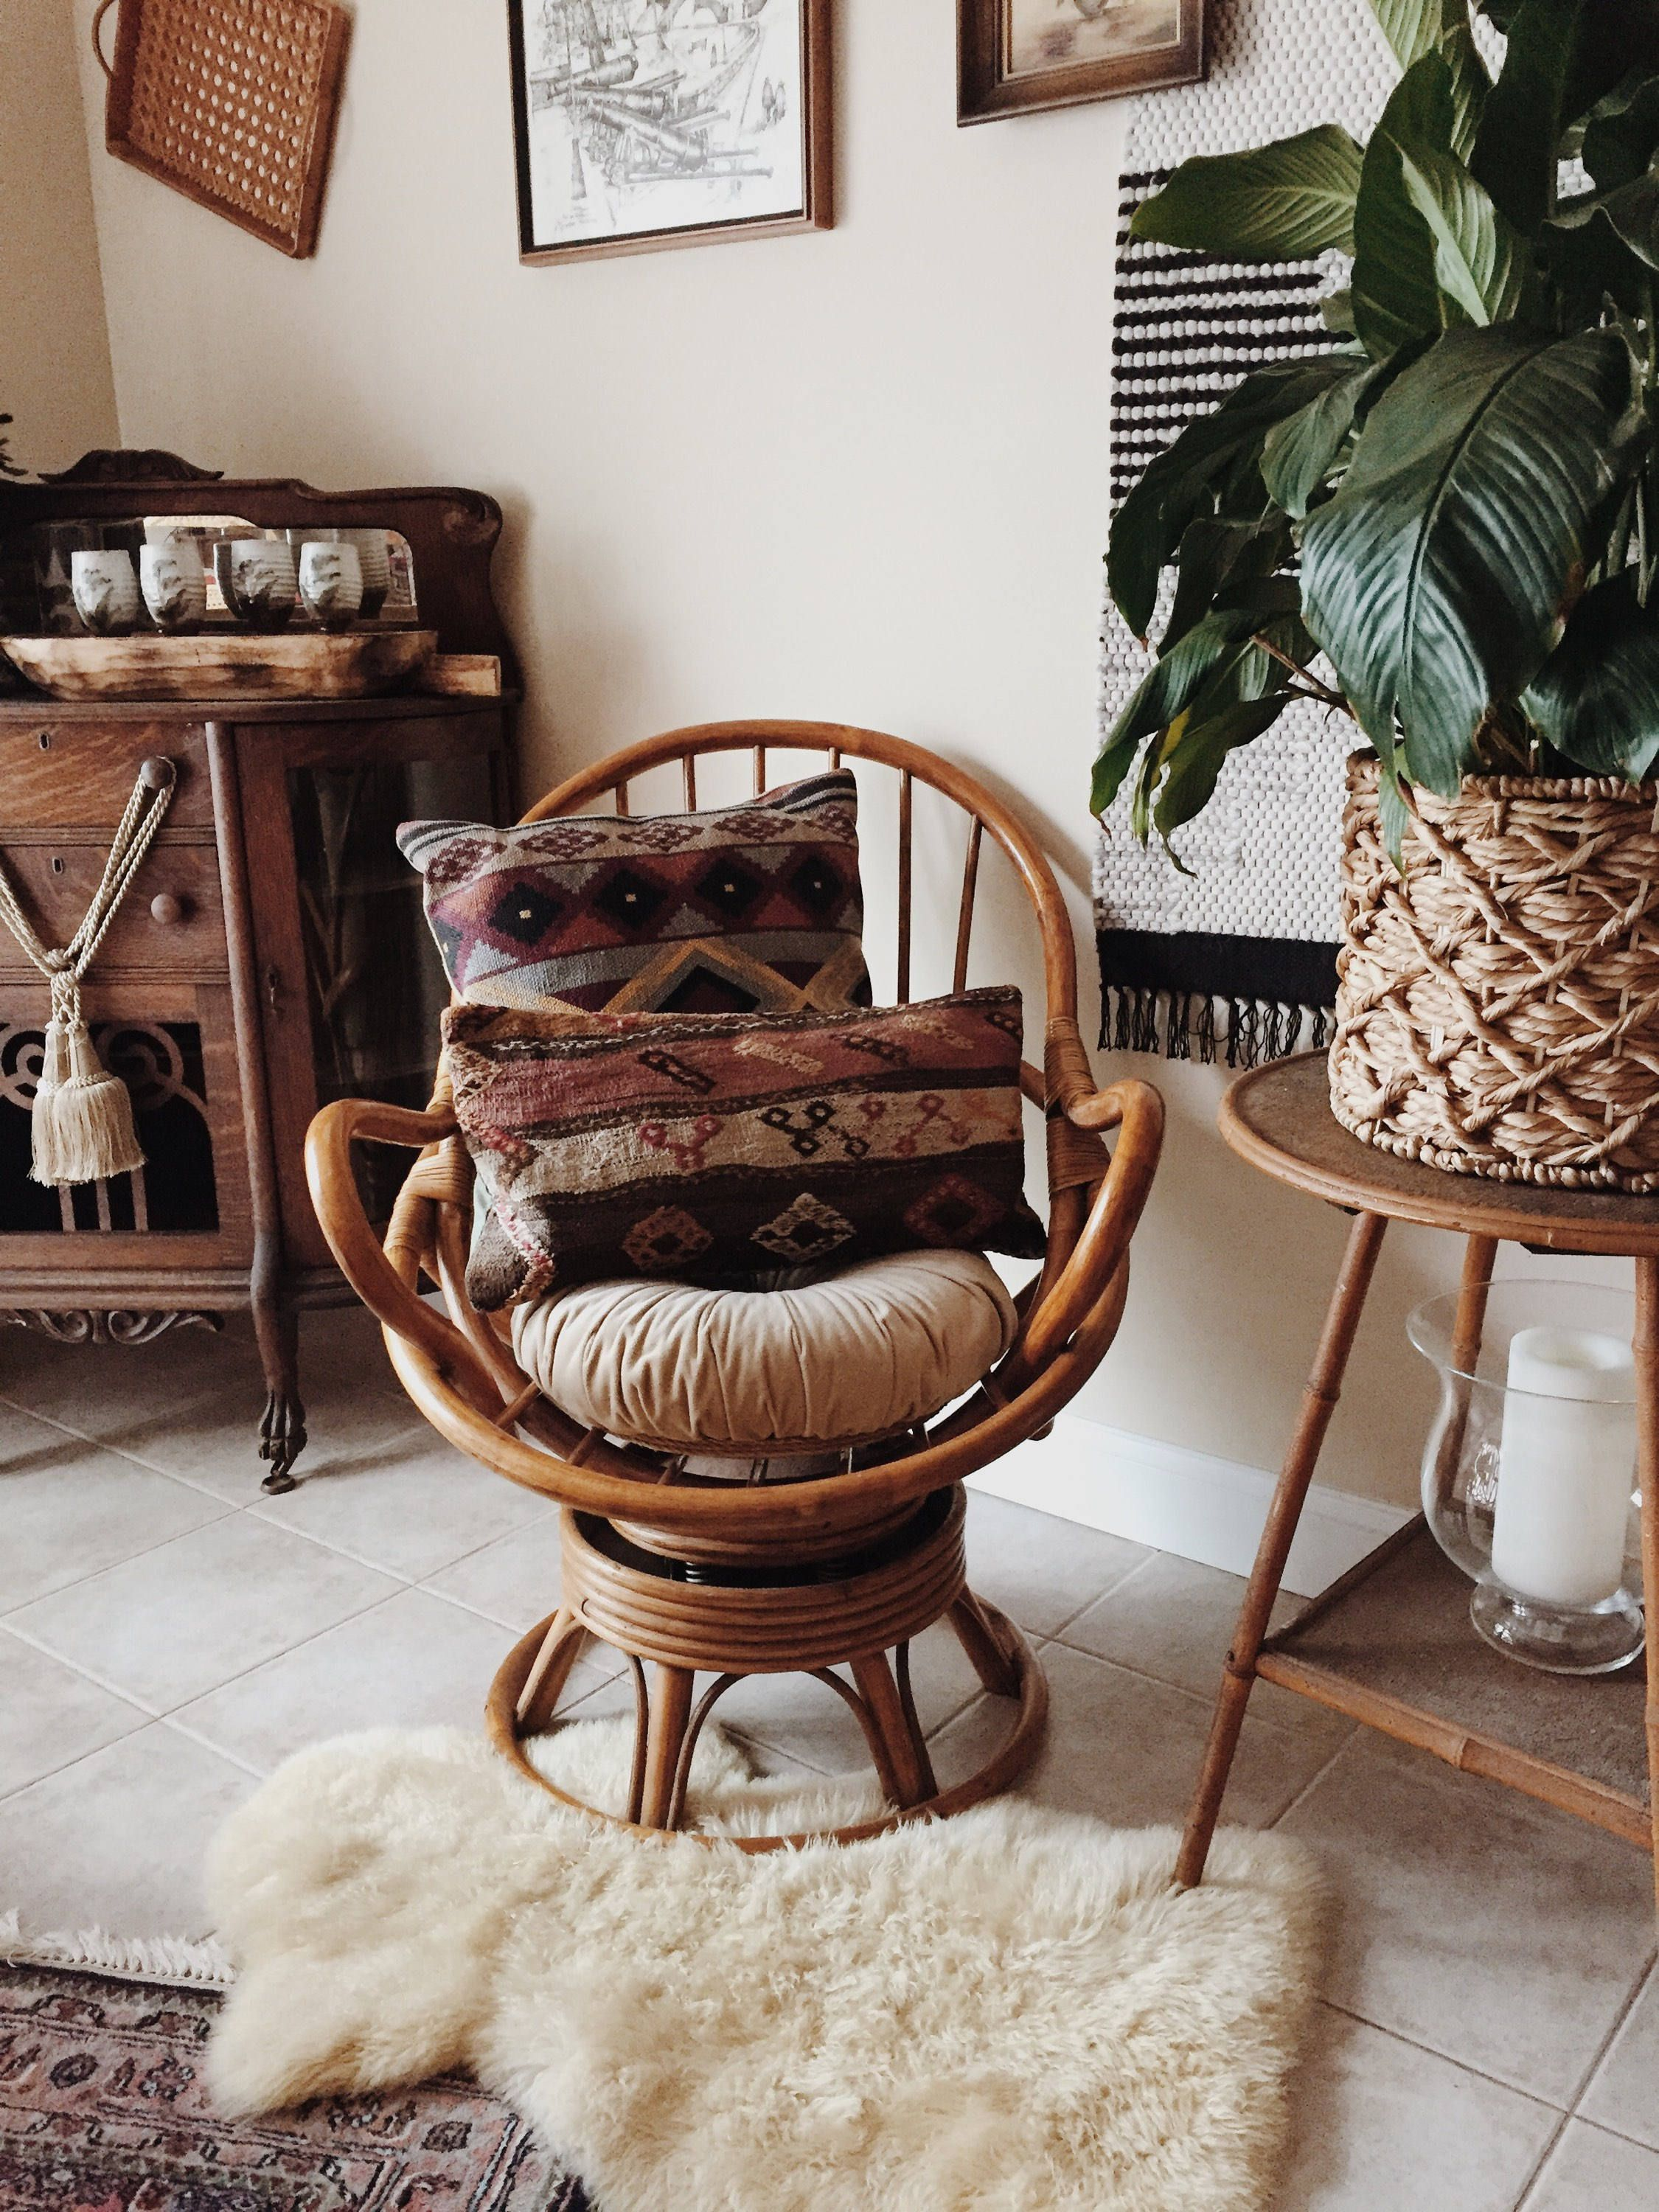 Merveilleux Mid Century Rattan Swivel Chair, Rattan Swivel Chair, Vintage Bamboo Chair,  Boho Rattan Chair *cushions Not Included :: CONDITION :: Great Vintage  Condition ...